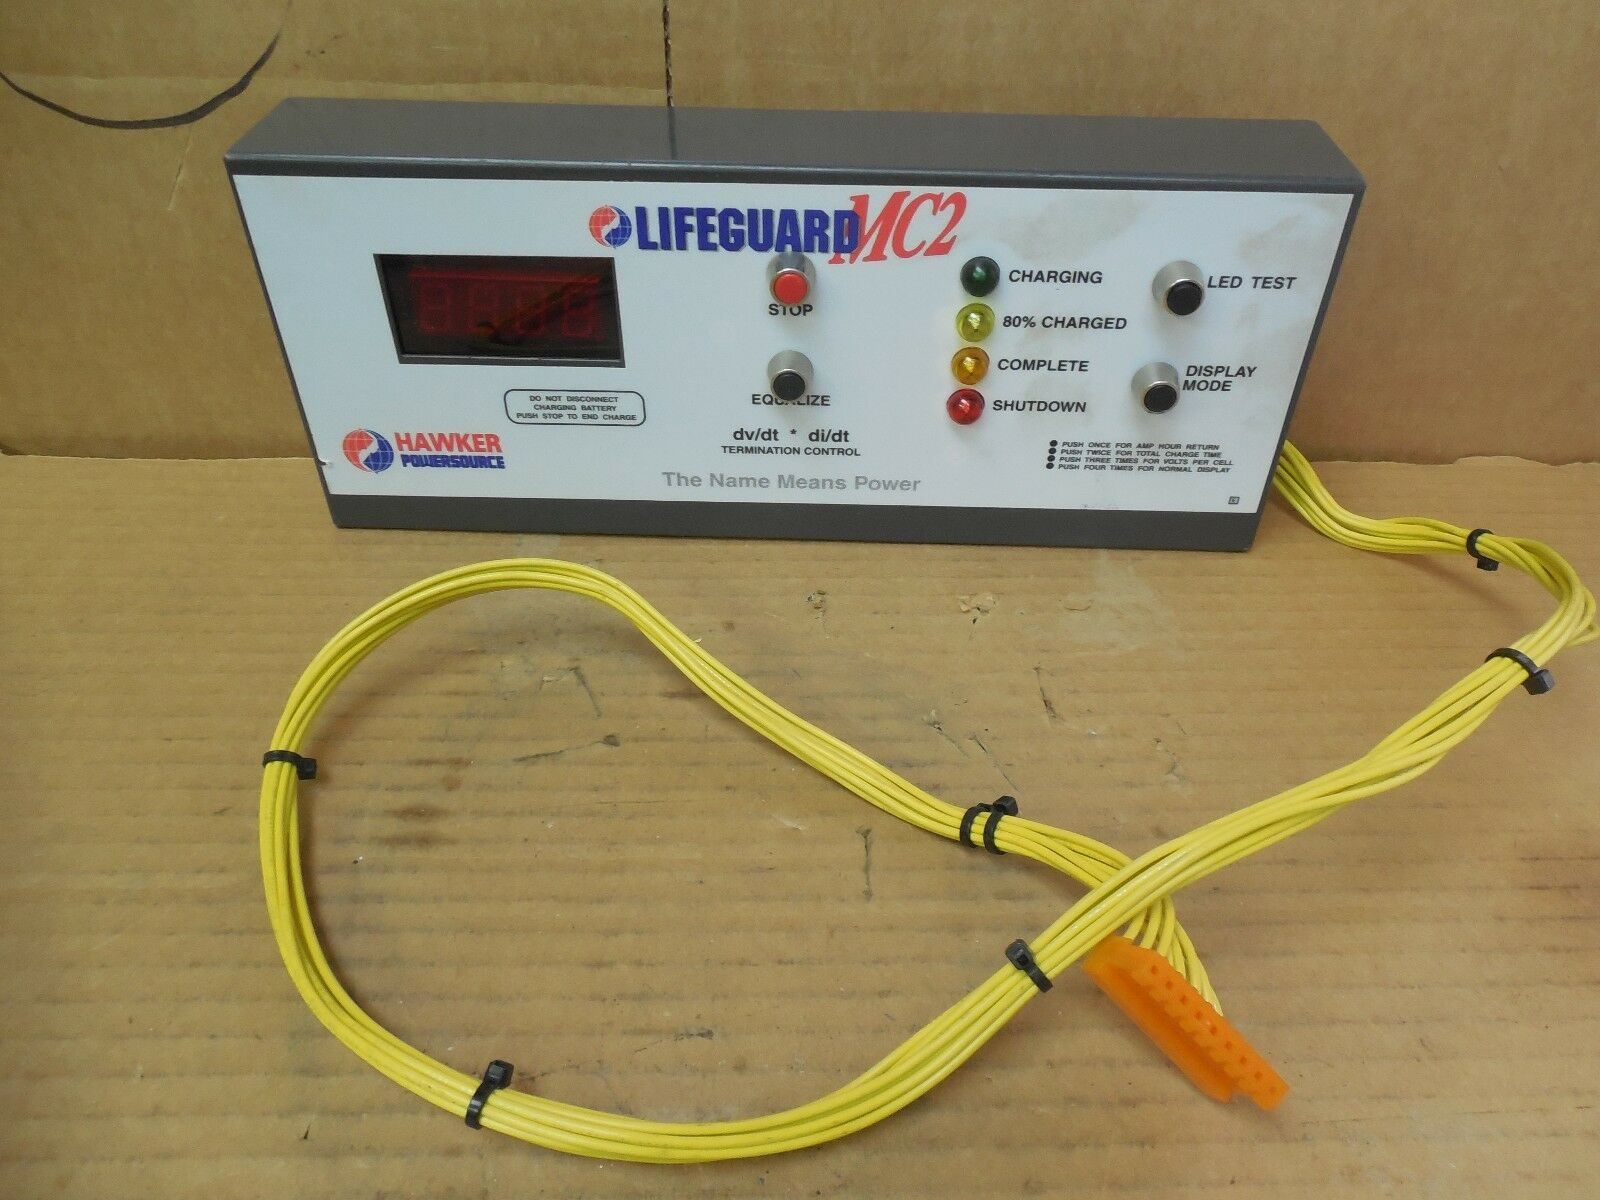 Hawker Powersource LIFEGUARD MC2 Termination Control Controller